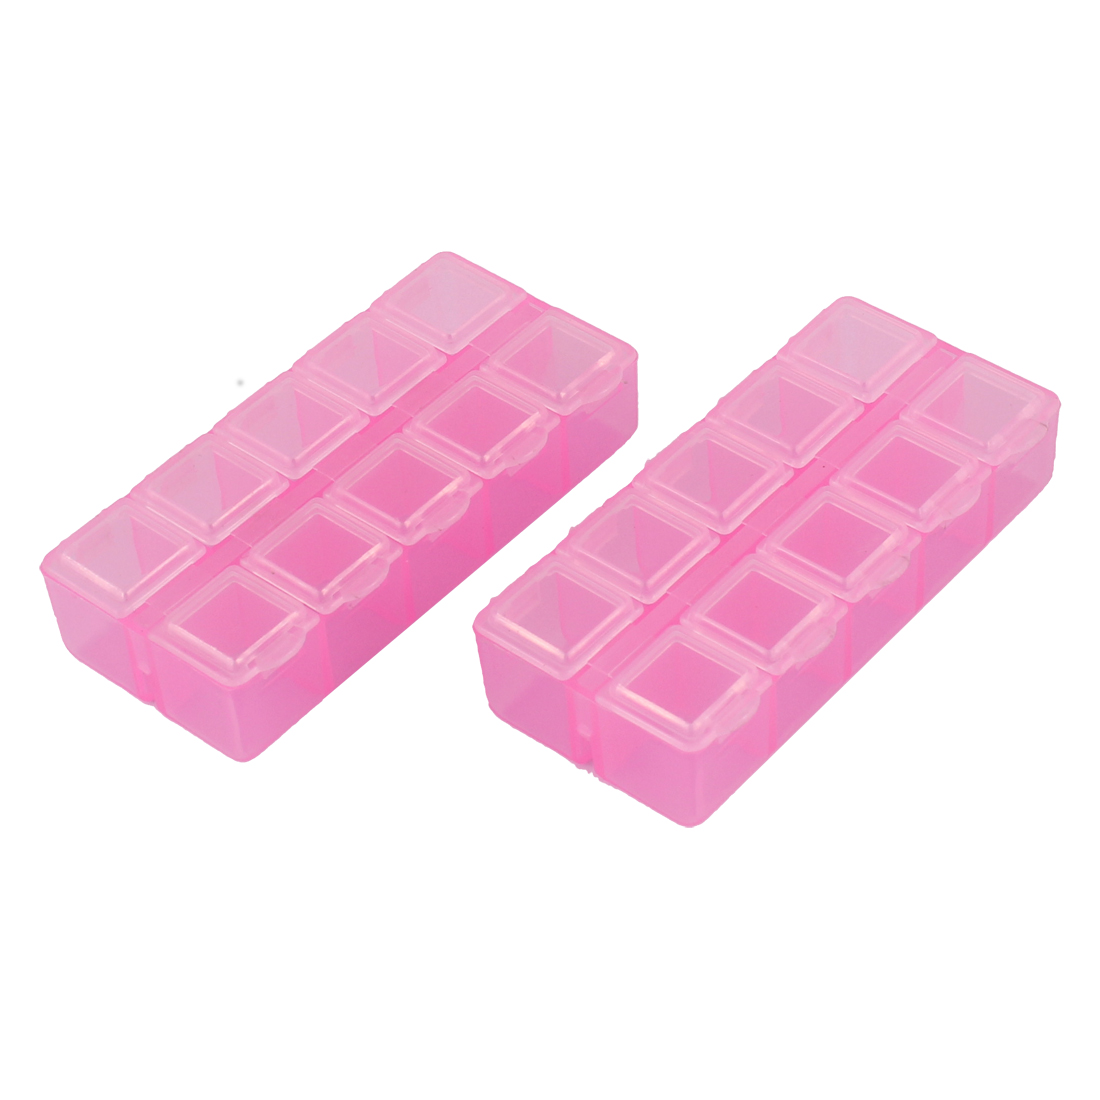 Component Dual Row 12 Slots Storage Case Box Organizer Container Clear Pink 2pcs